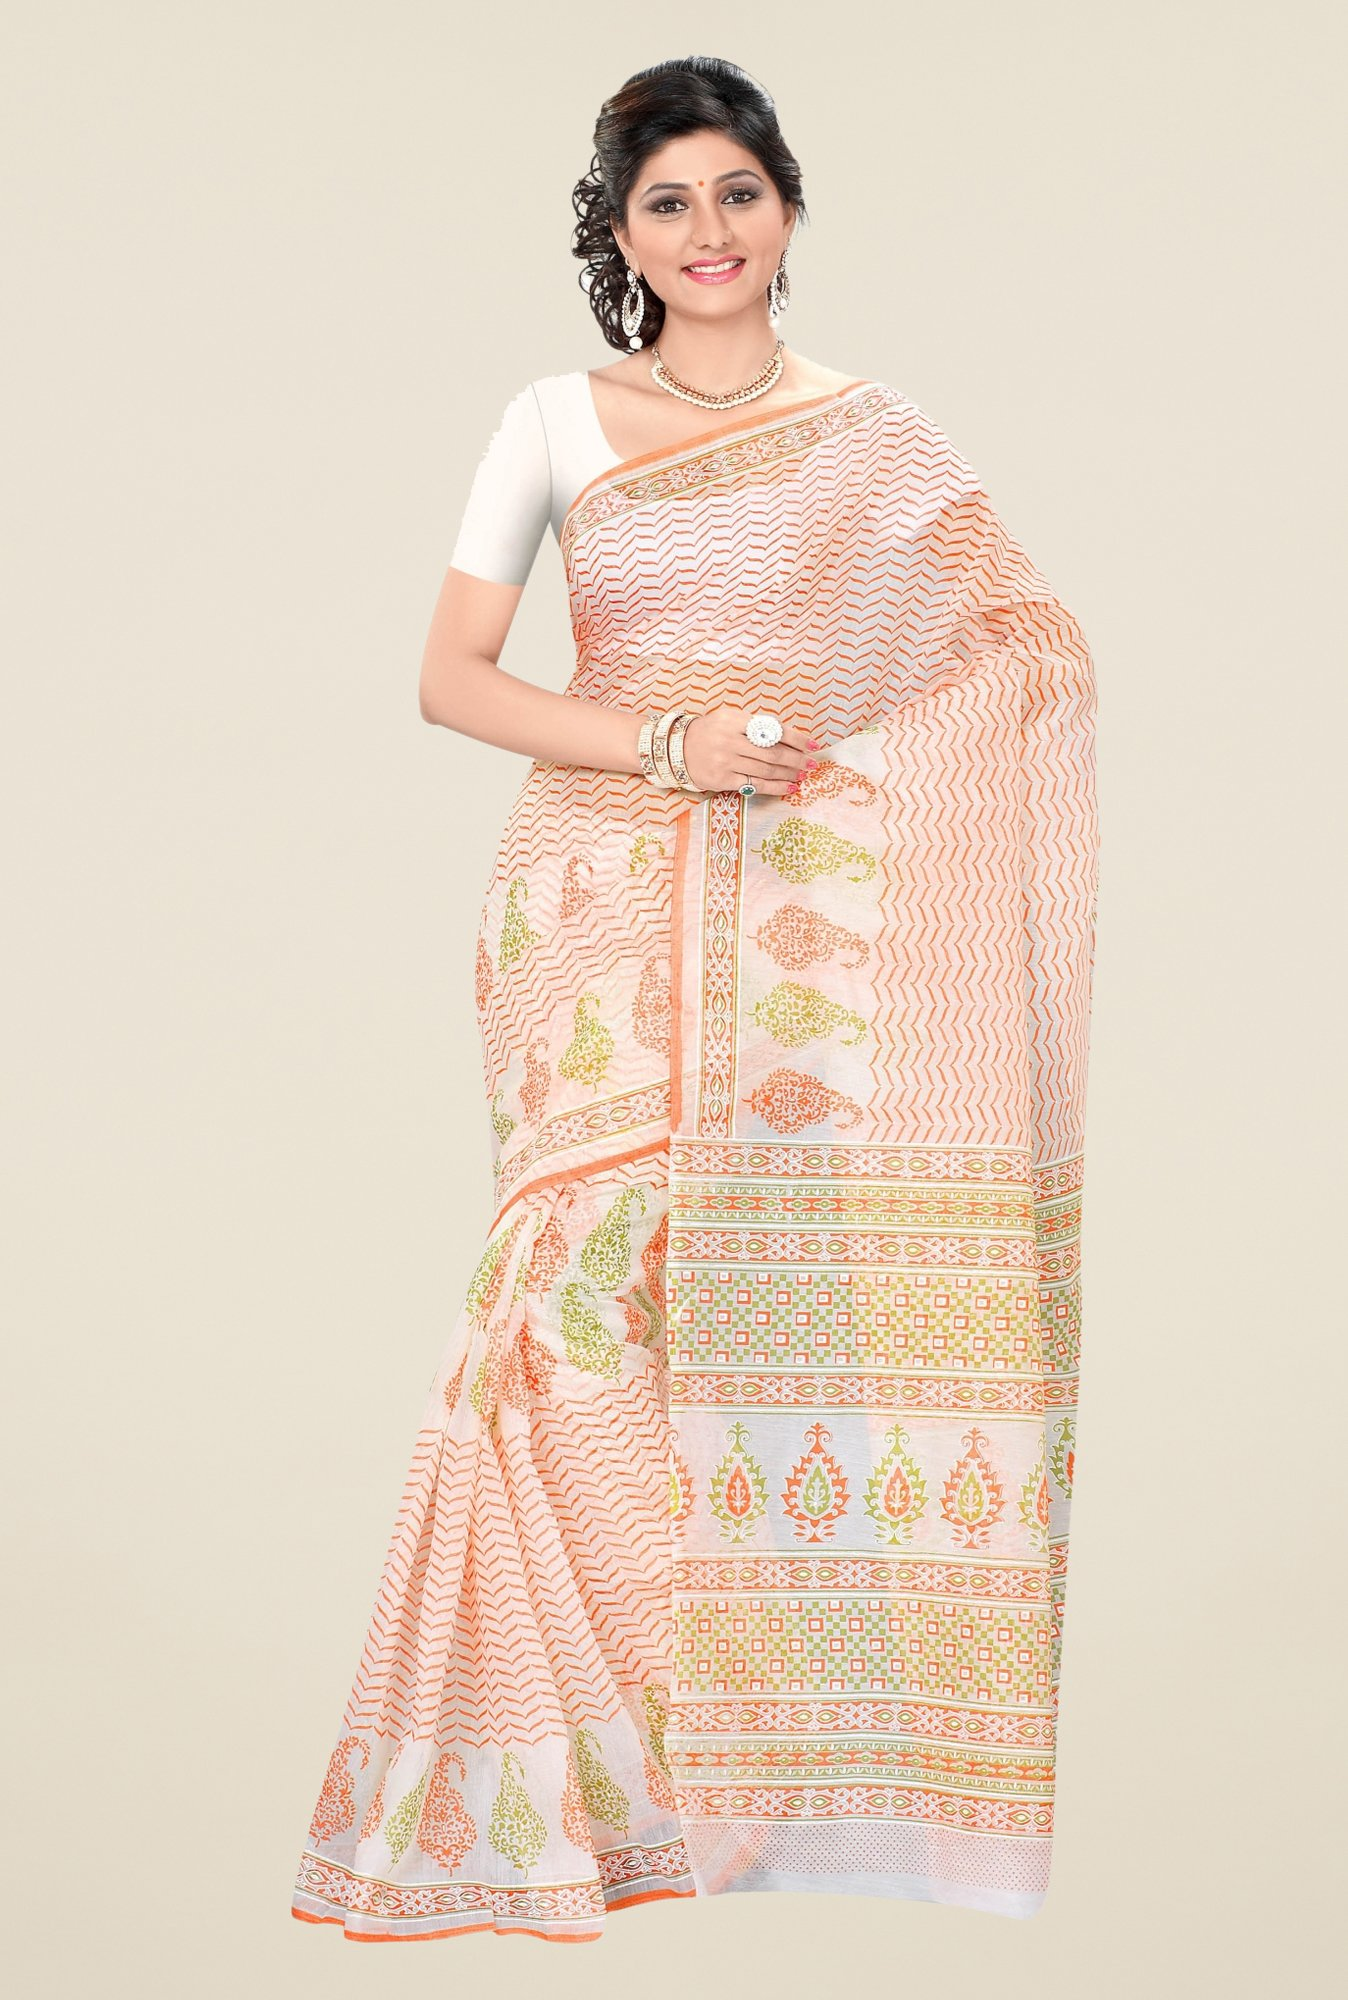 Triveni Off-White & Orange Printed Blended Cotton Saree